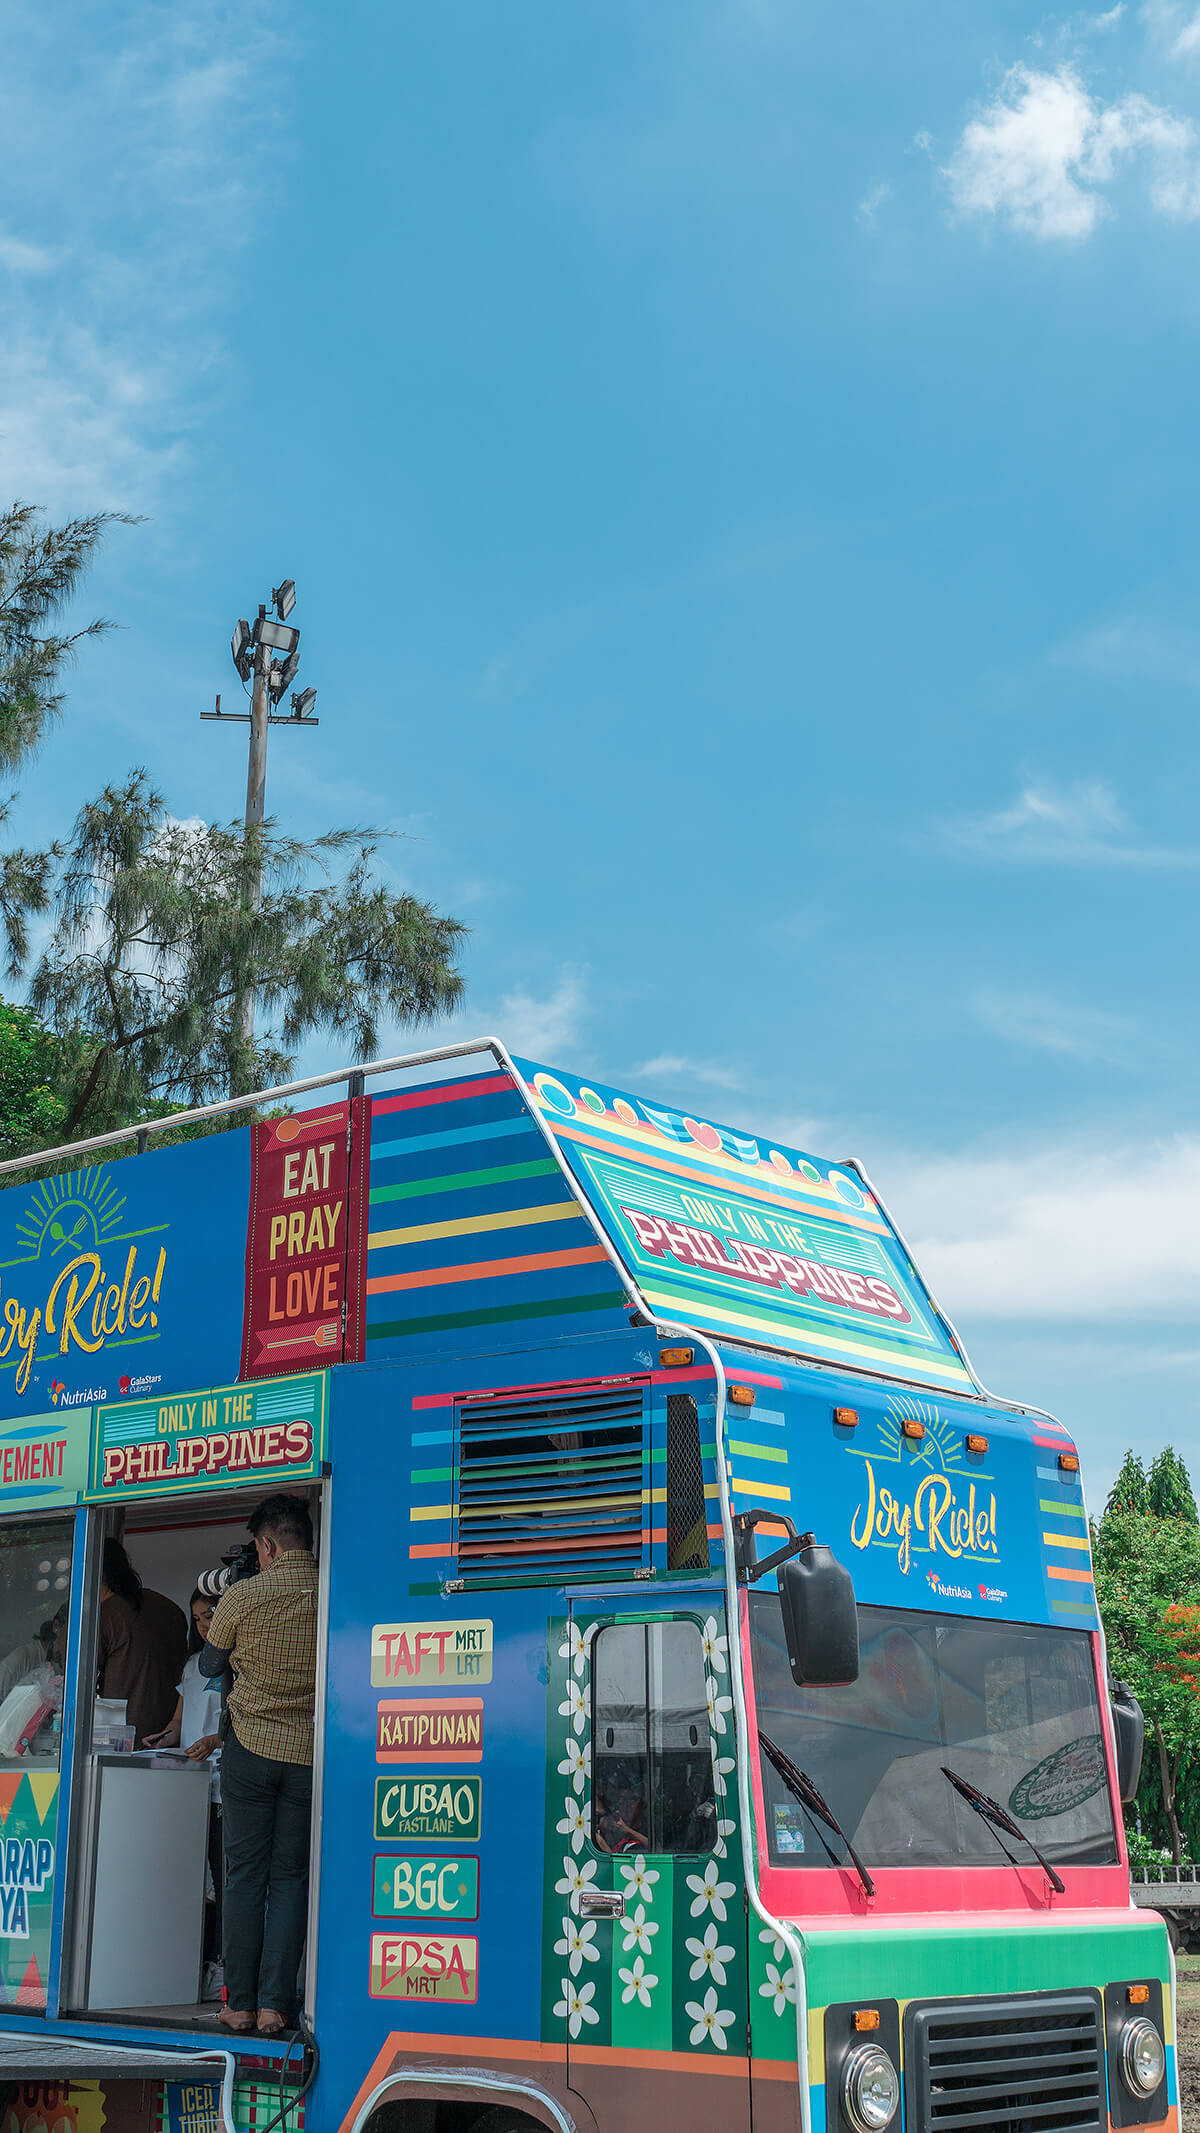 Joy Ride! Food Truck by NutriAsia